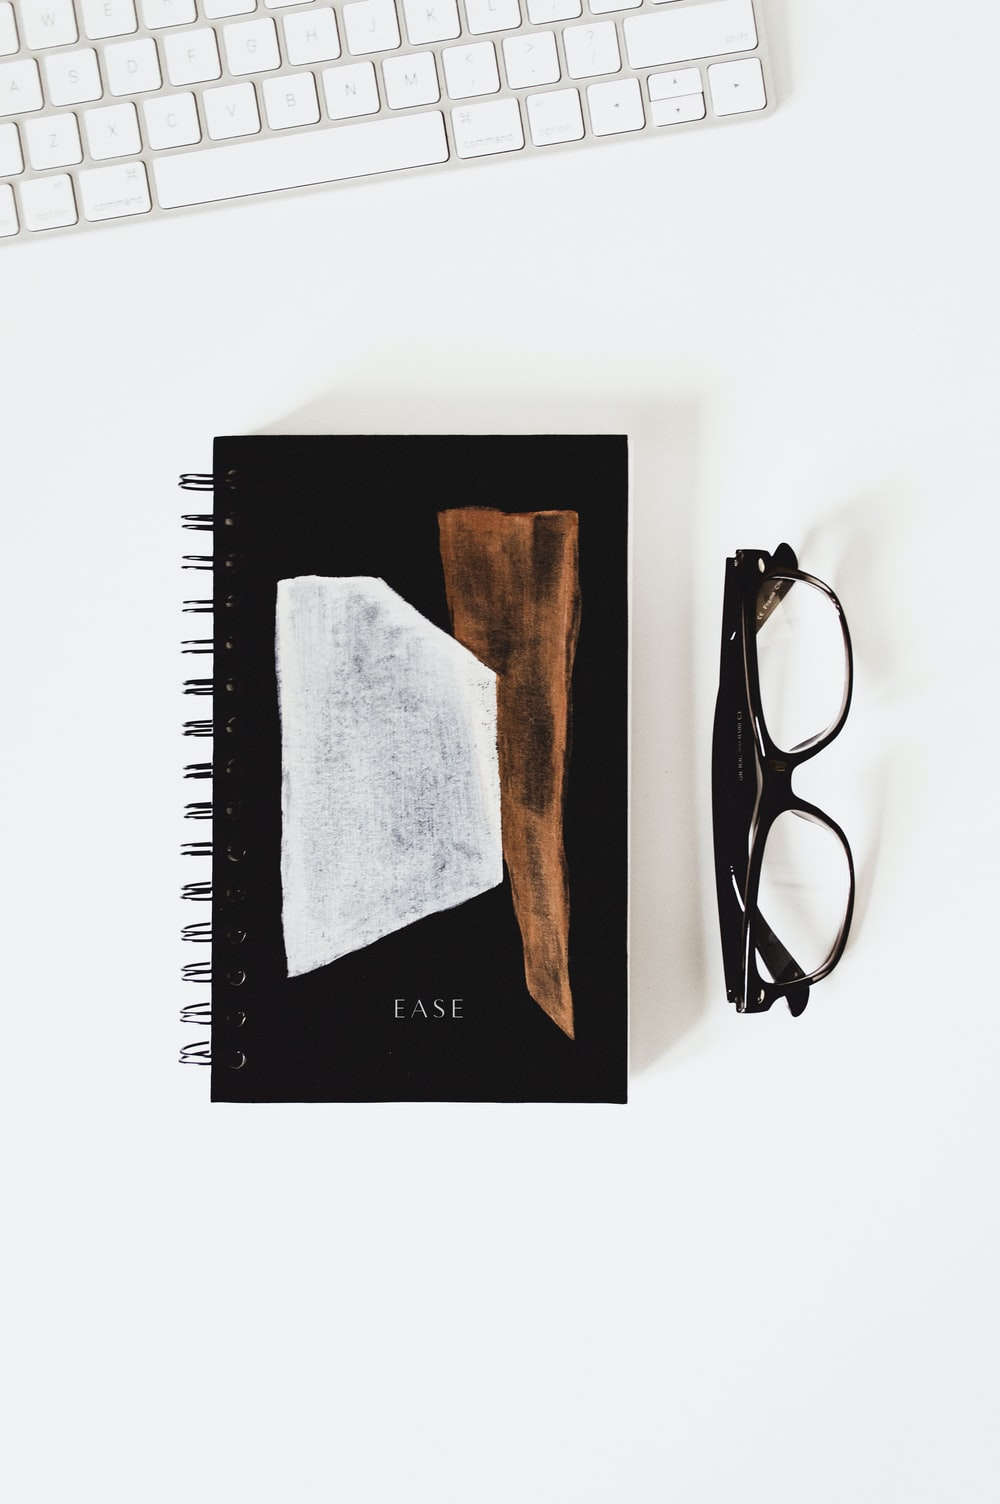 eyeglasses beside Ease book